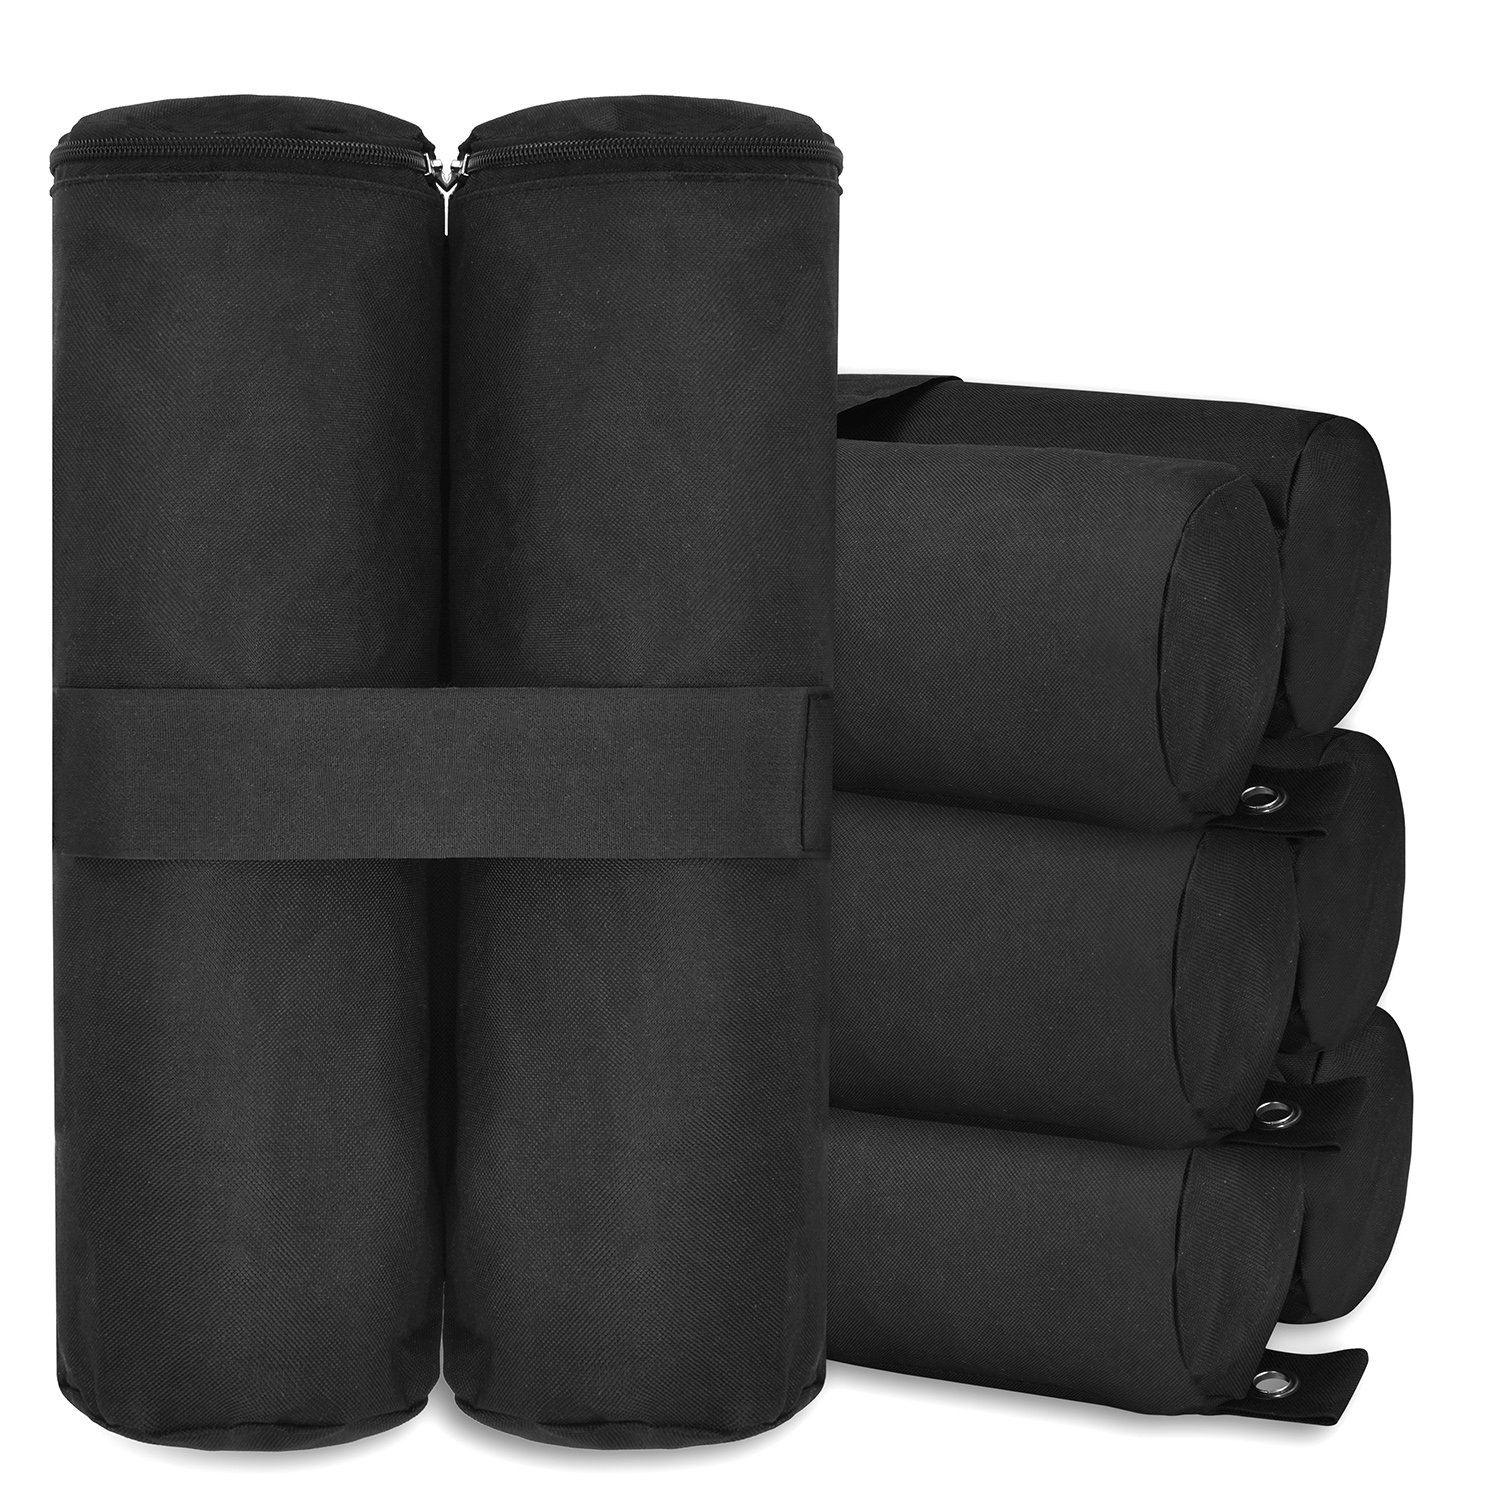 MaidMAX Canopy Weight Bags,Sand Bag with Zippered Top for Instant Legs,Pop Up Canopy Outdoor Sun Shelter Tents, 4-Pack